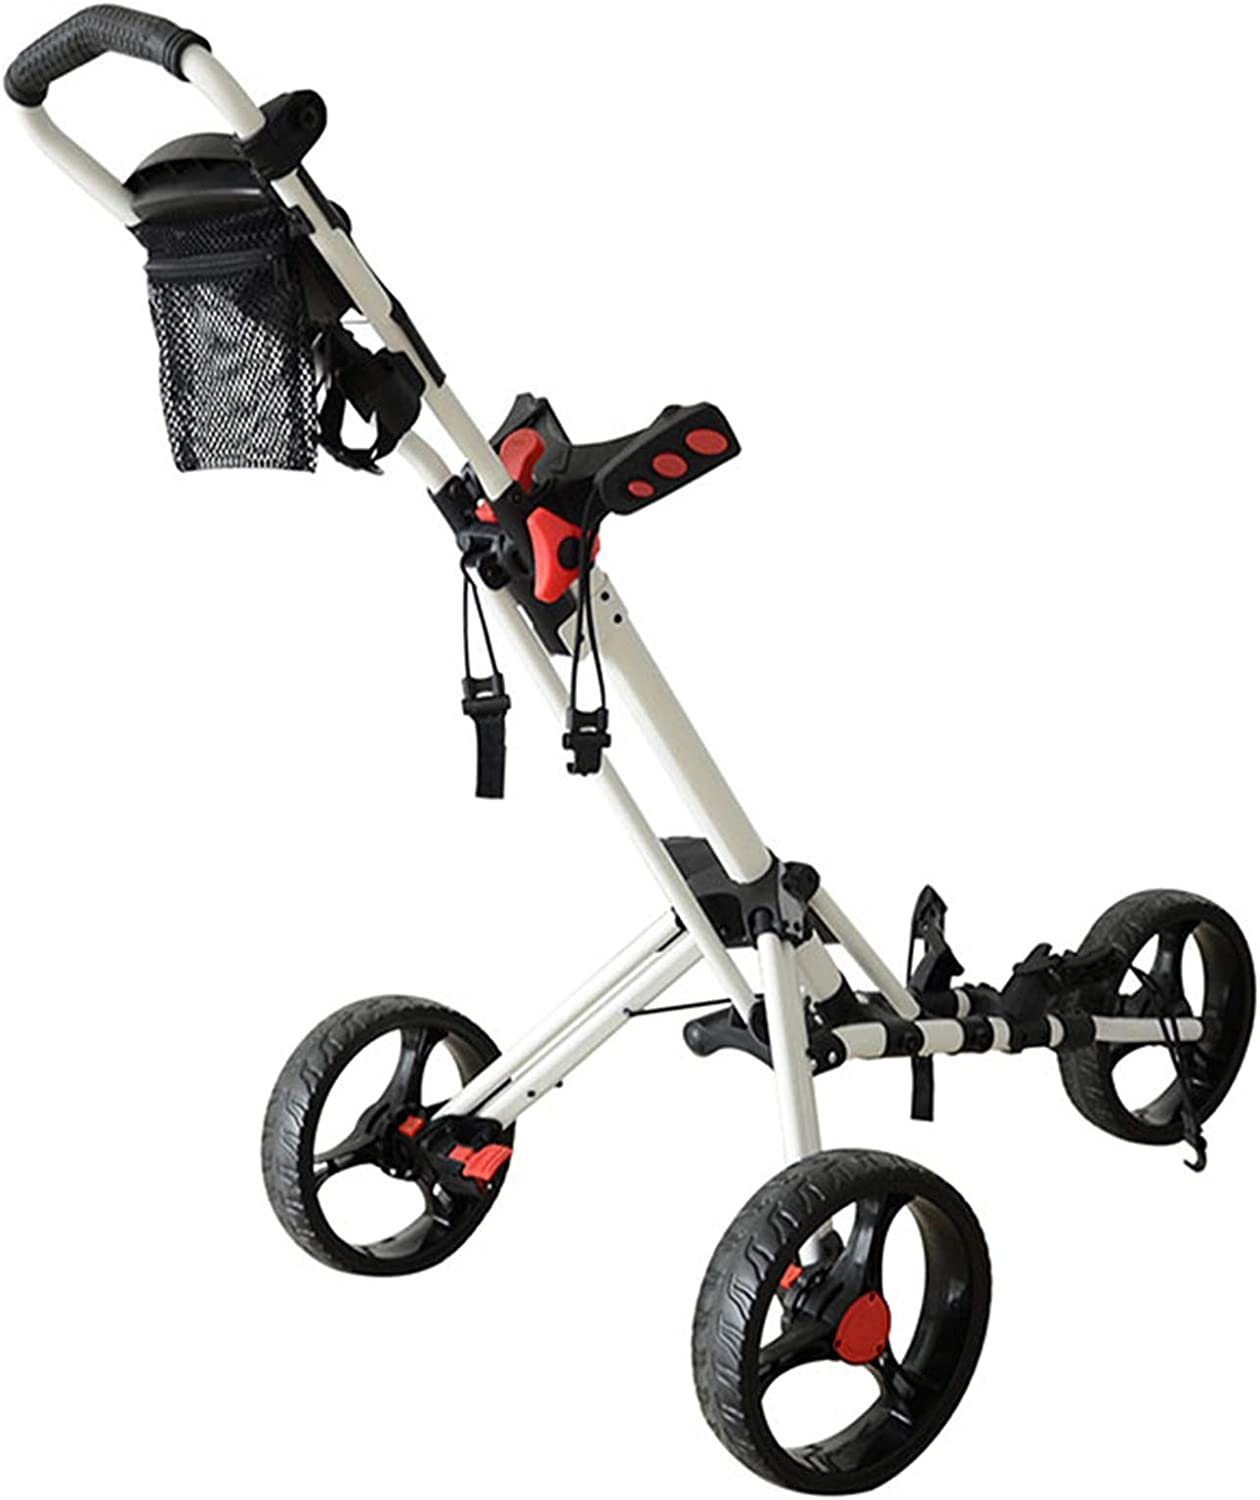 XIONGGG 3 Wheel Golf Push Cart, Folding 360 Swivel with Parasol Stand Beverage Holder and Storage Bags